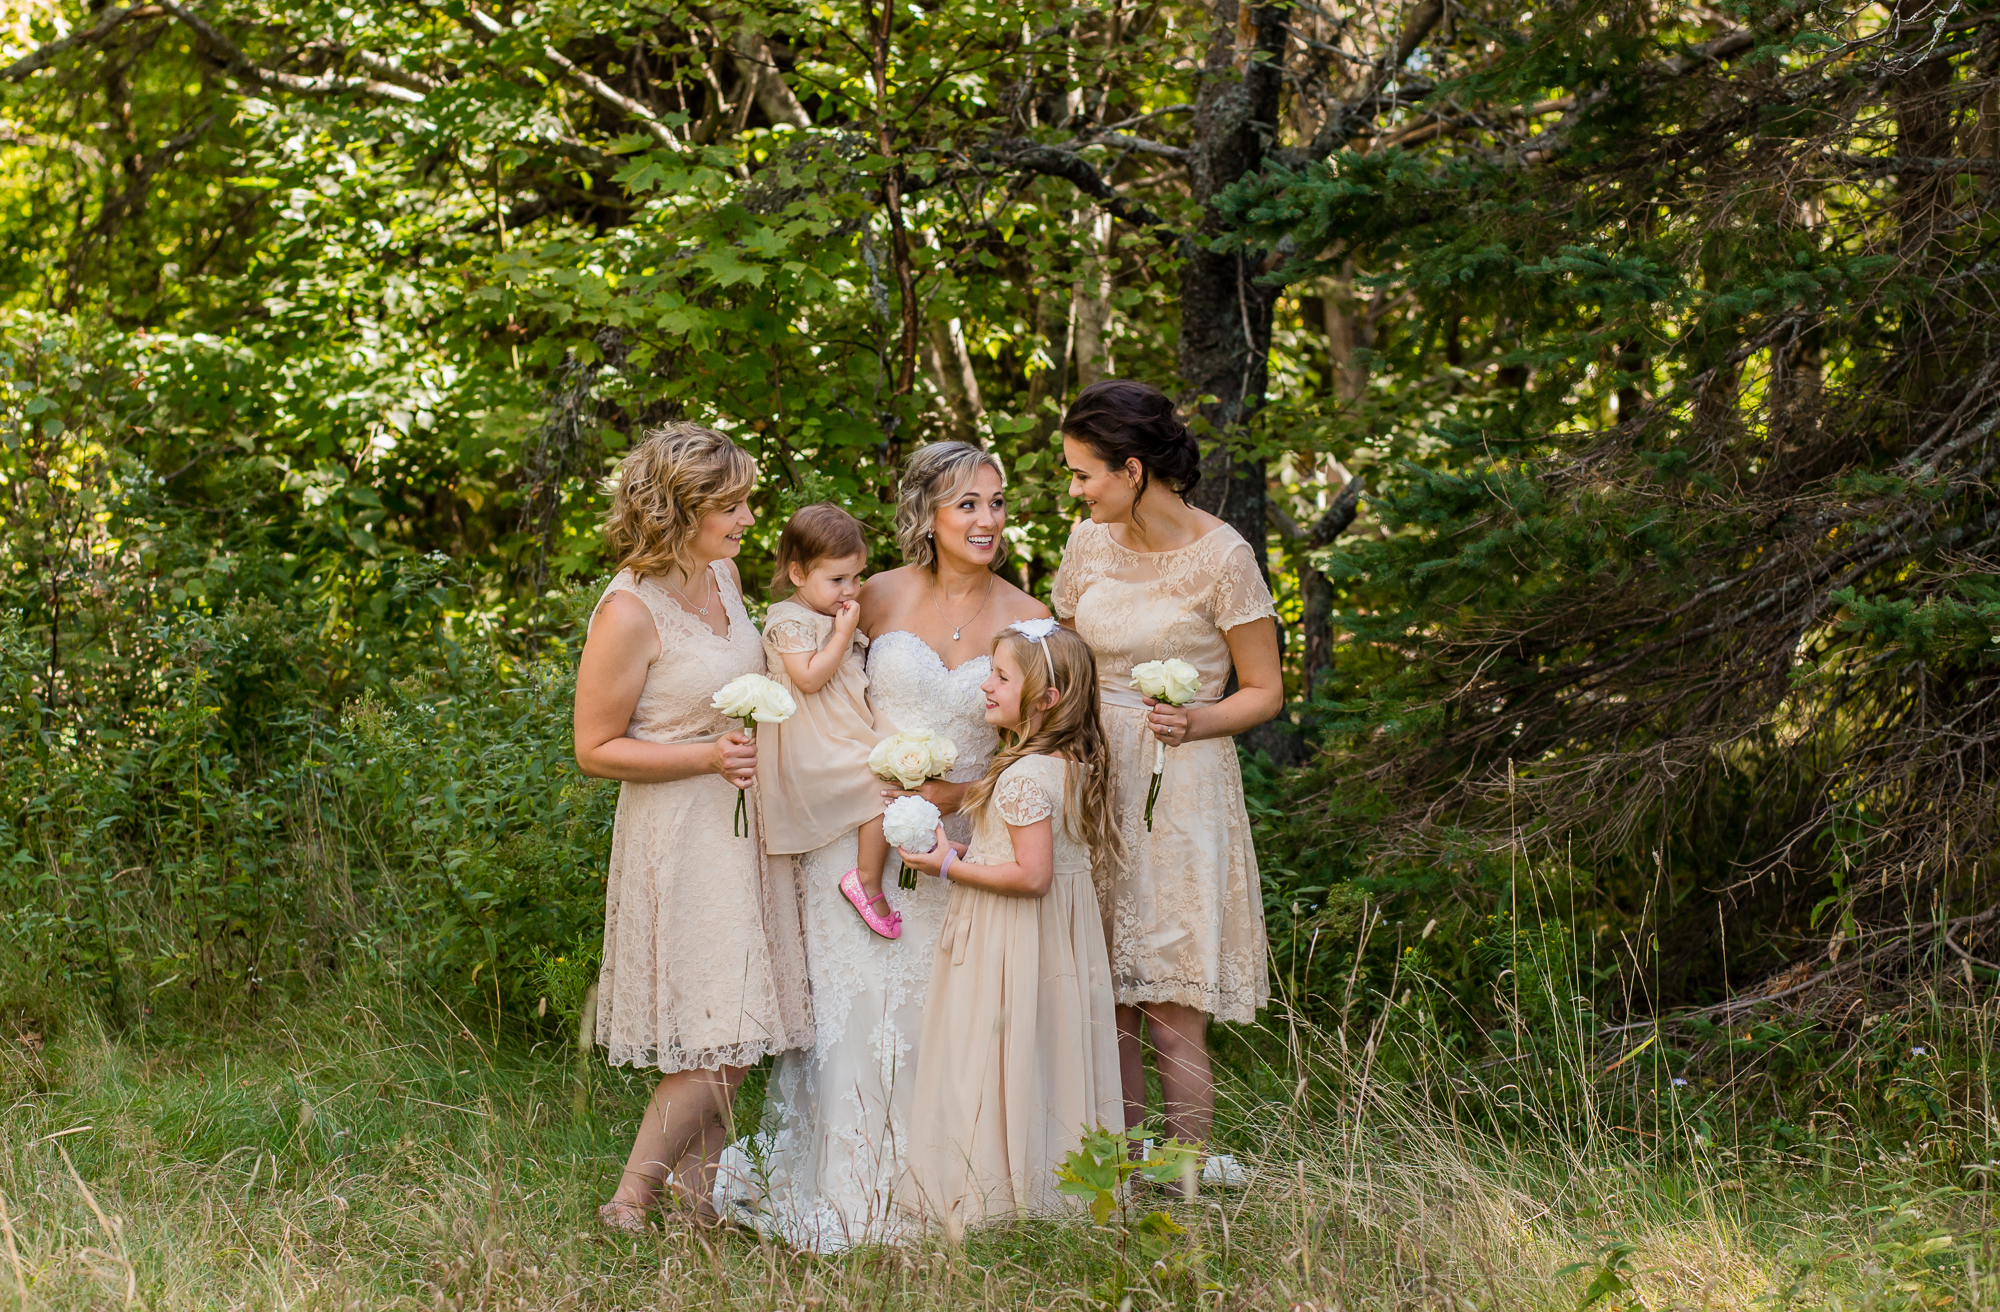 moncton wedding  photographer Tara Geldart-160.JPG